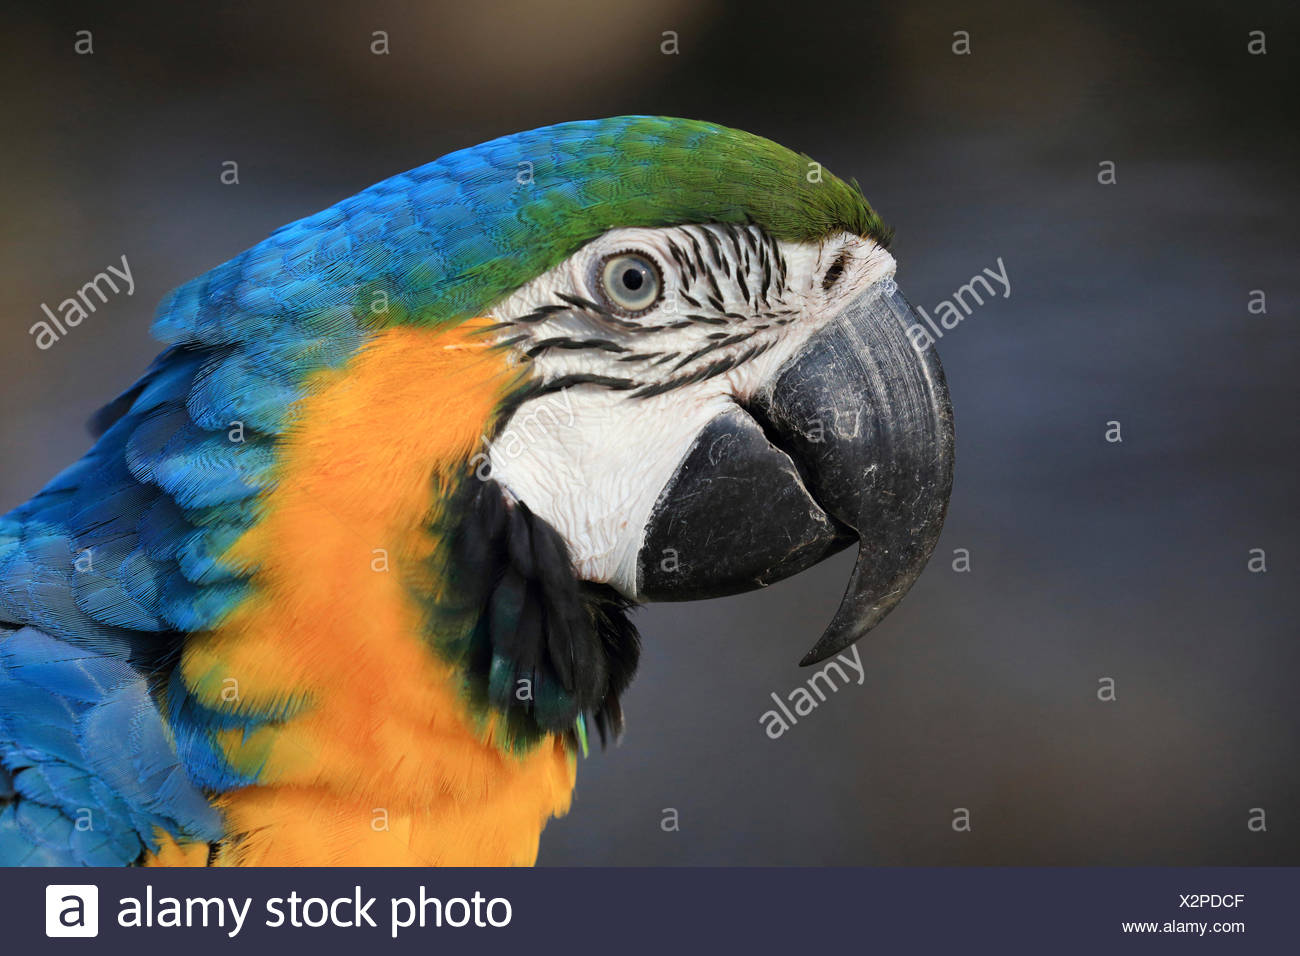 Blue and yellow macaw, Blue and gold Macaw, Blue-and-gold Macaw, Blue-and-yellow Macaw (Ara ararauna), portrait Stock Photo